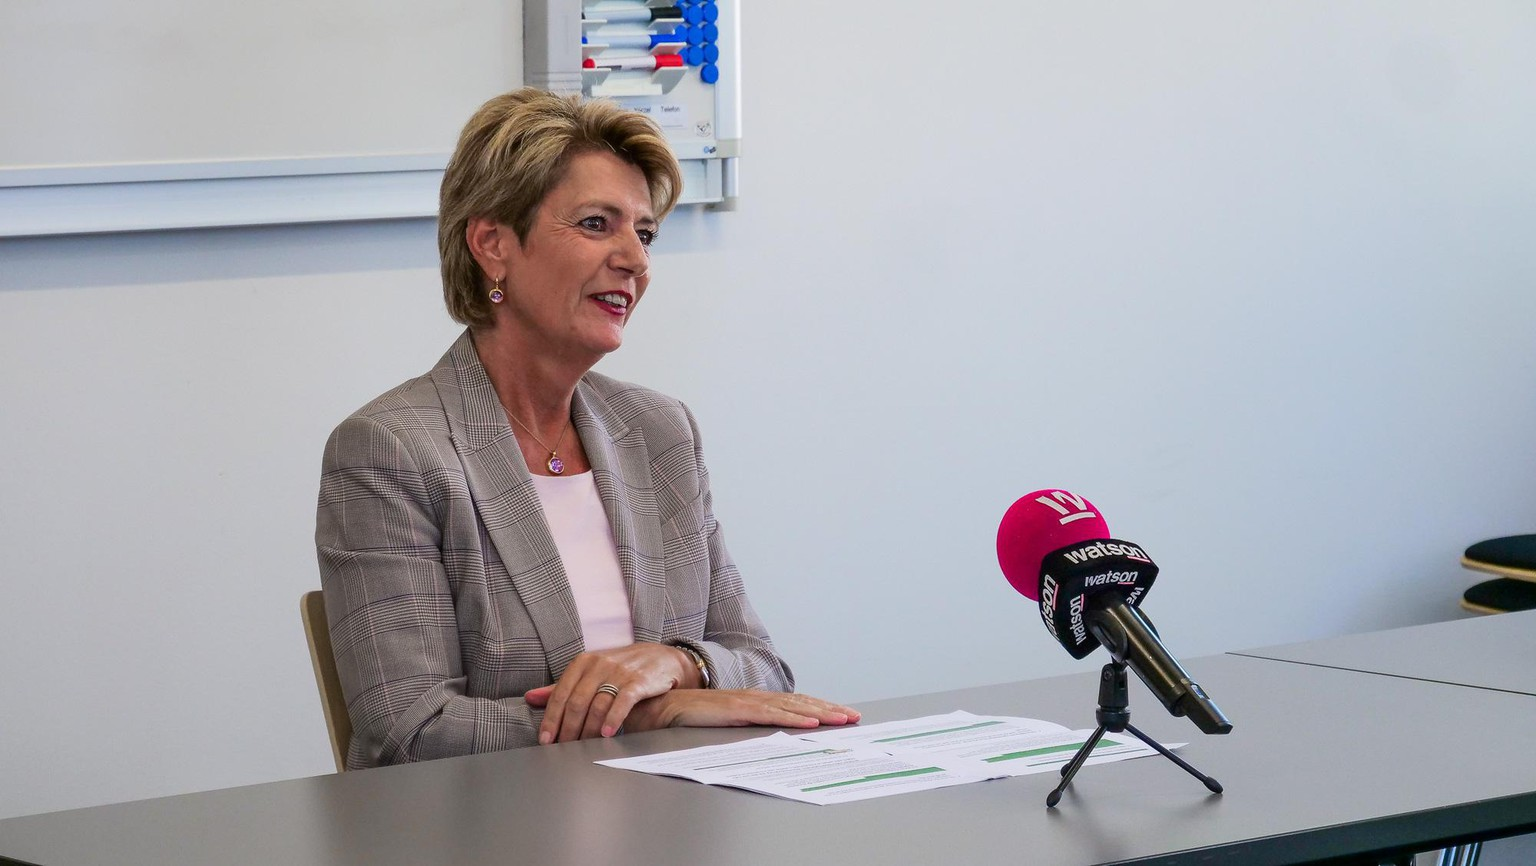 Karin Keller-Sutter im Interview am 4. September 2020